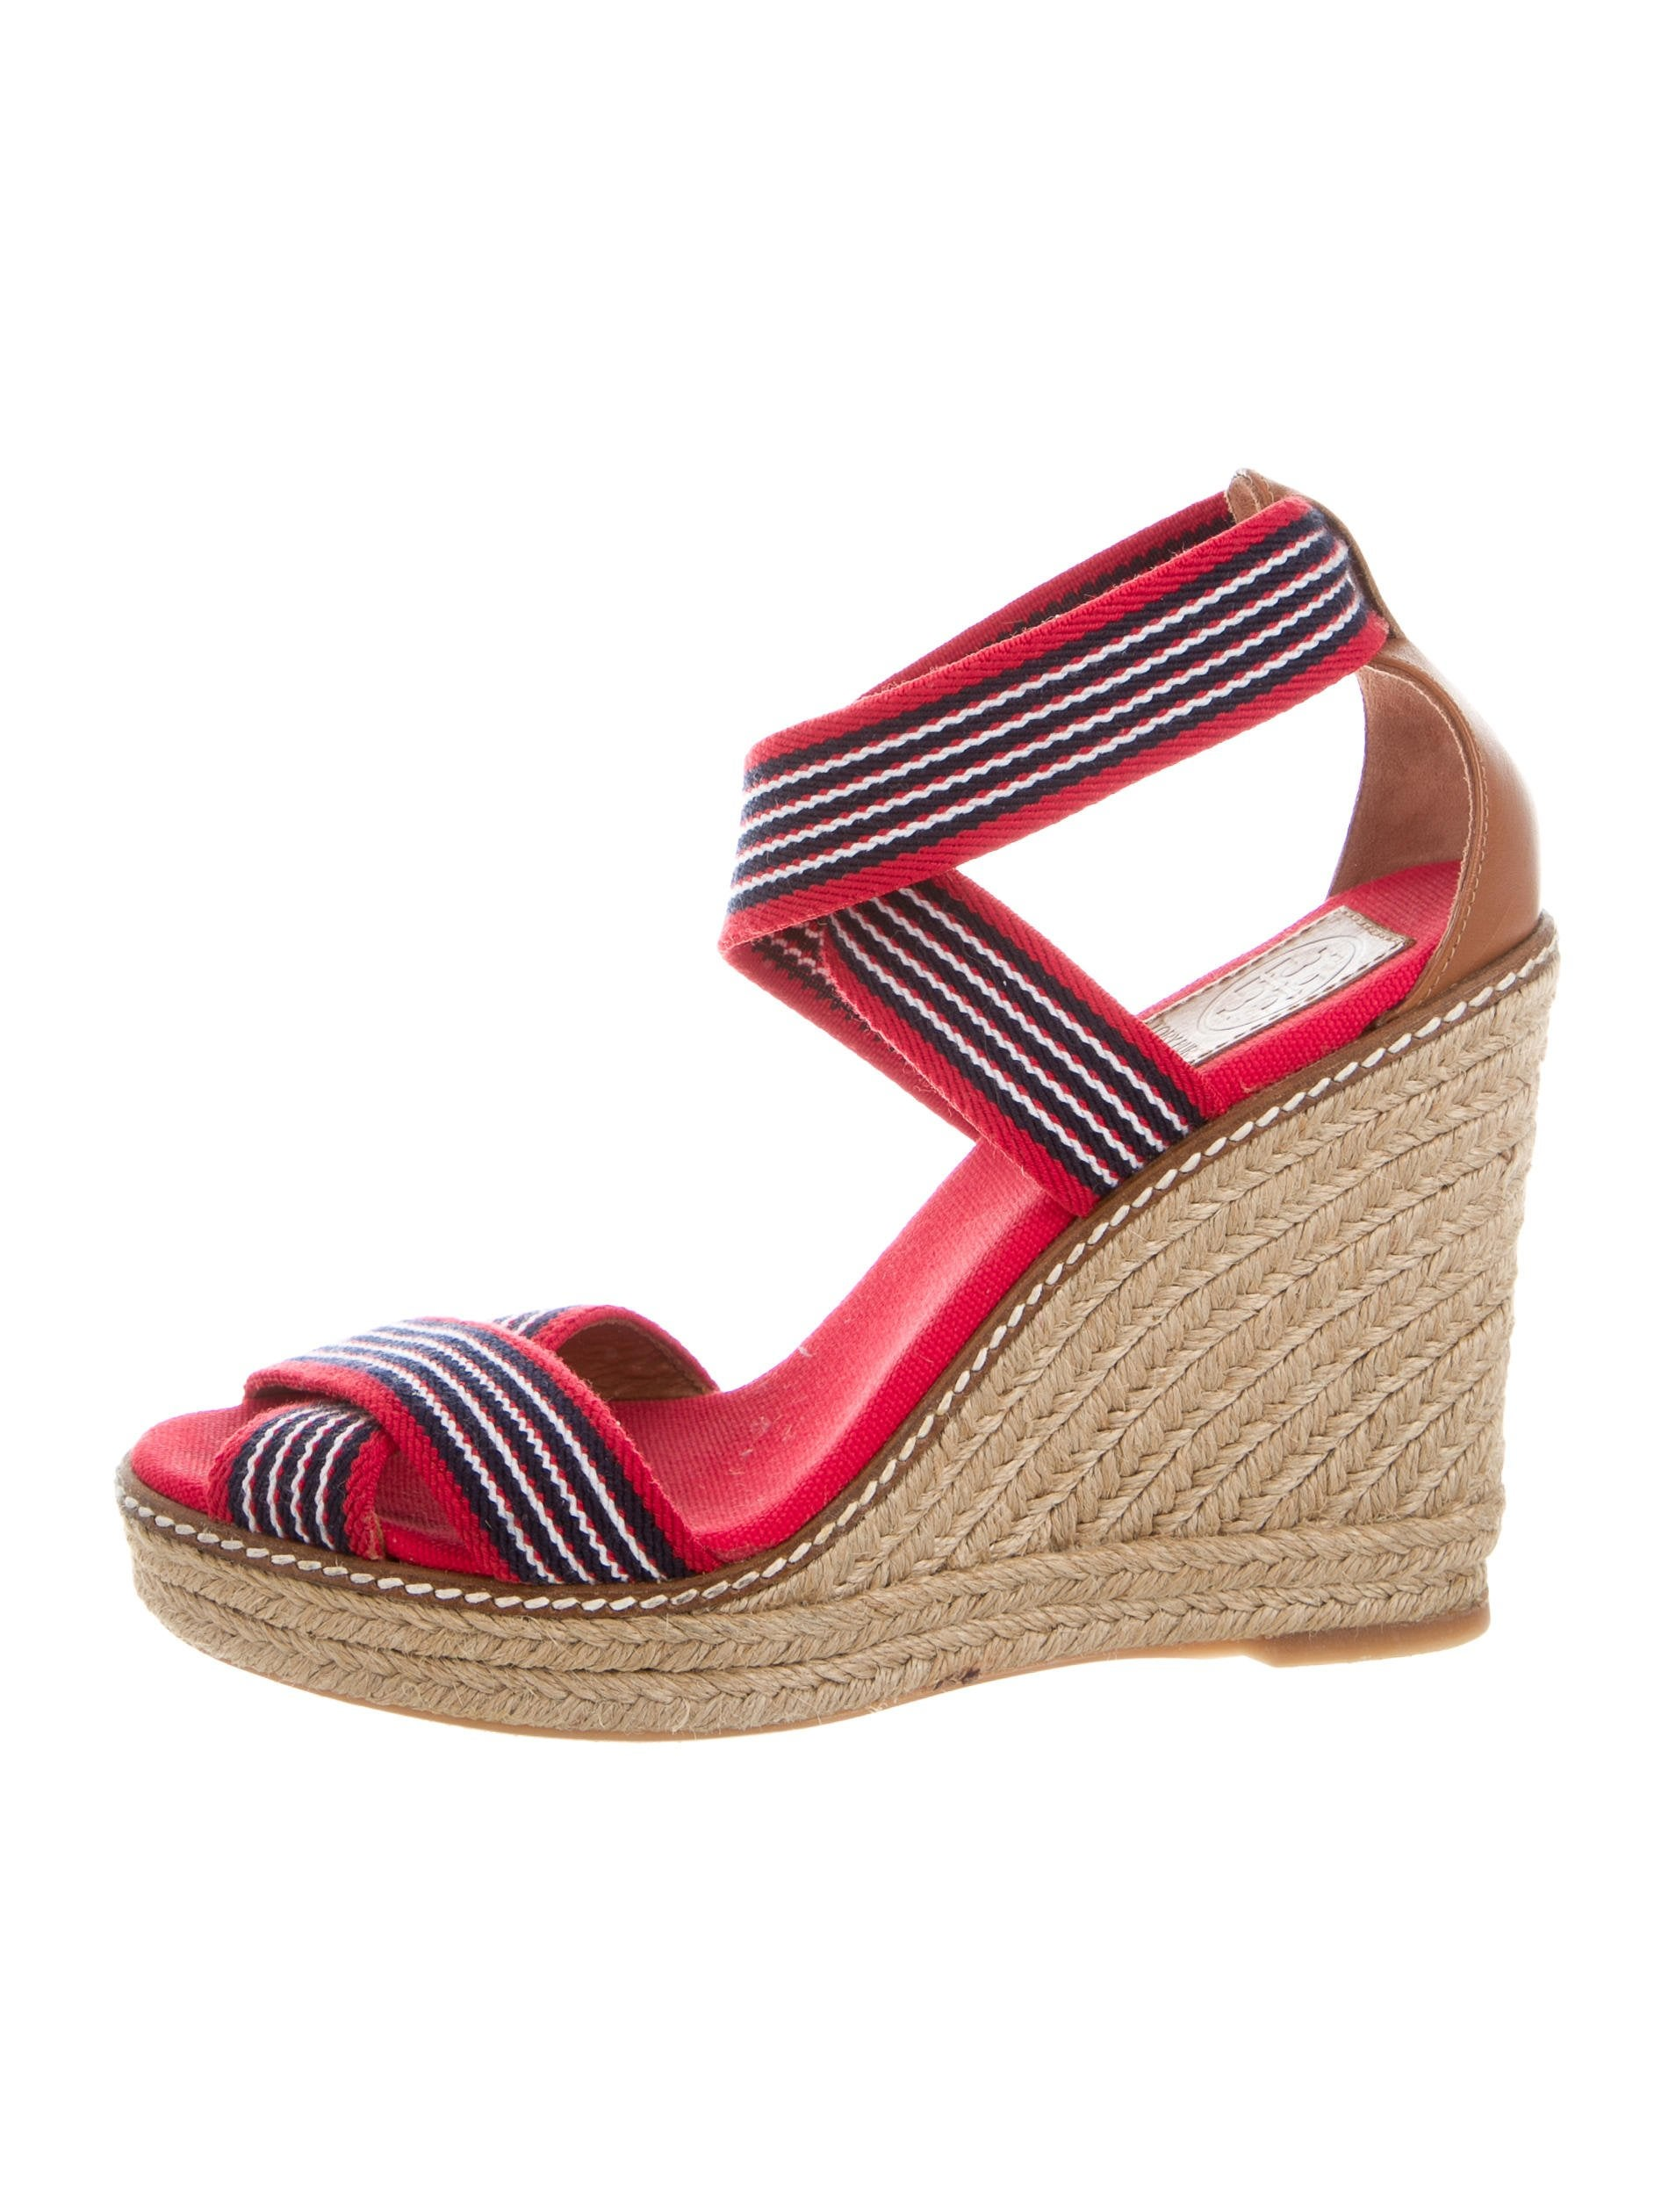 Women · Shoes; Tory Burch Crossover Espadrille Wedges. Crossover Espadrille  Wedges